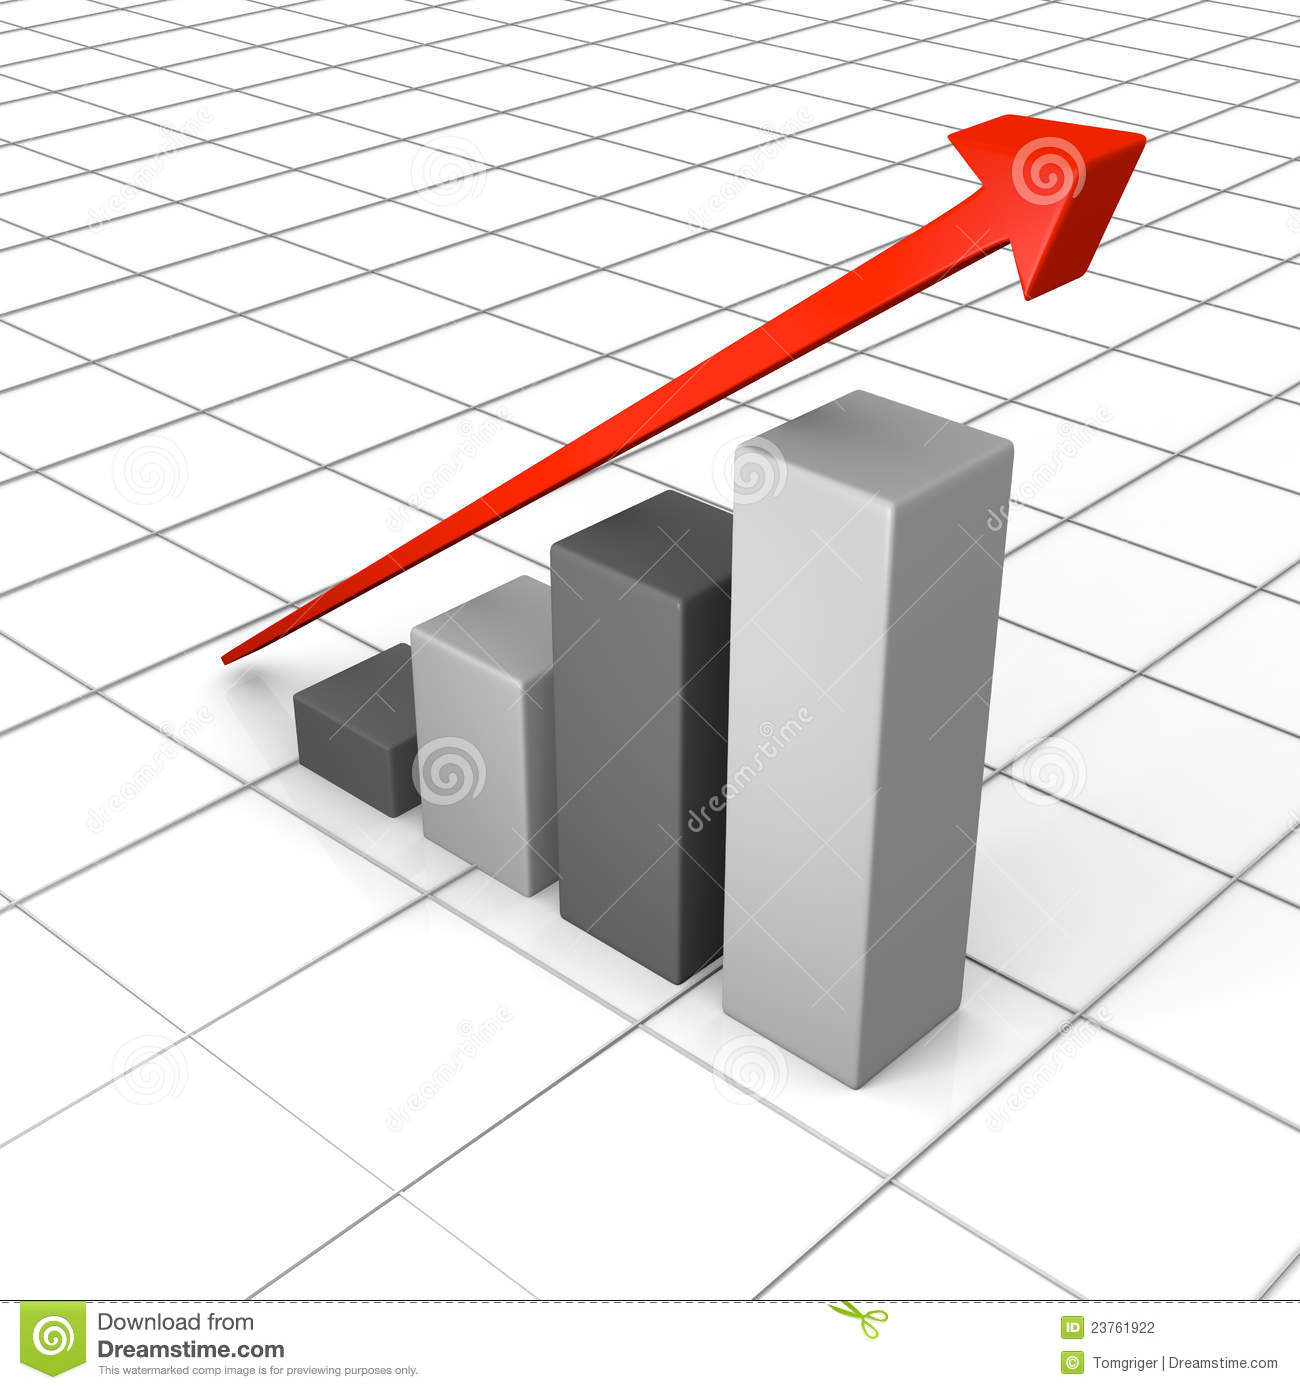 Growth Chart With Linear Trend Line Stock Illustration